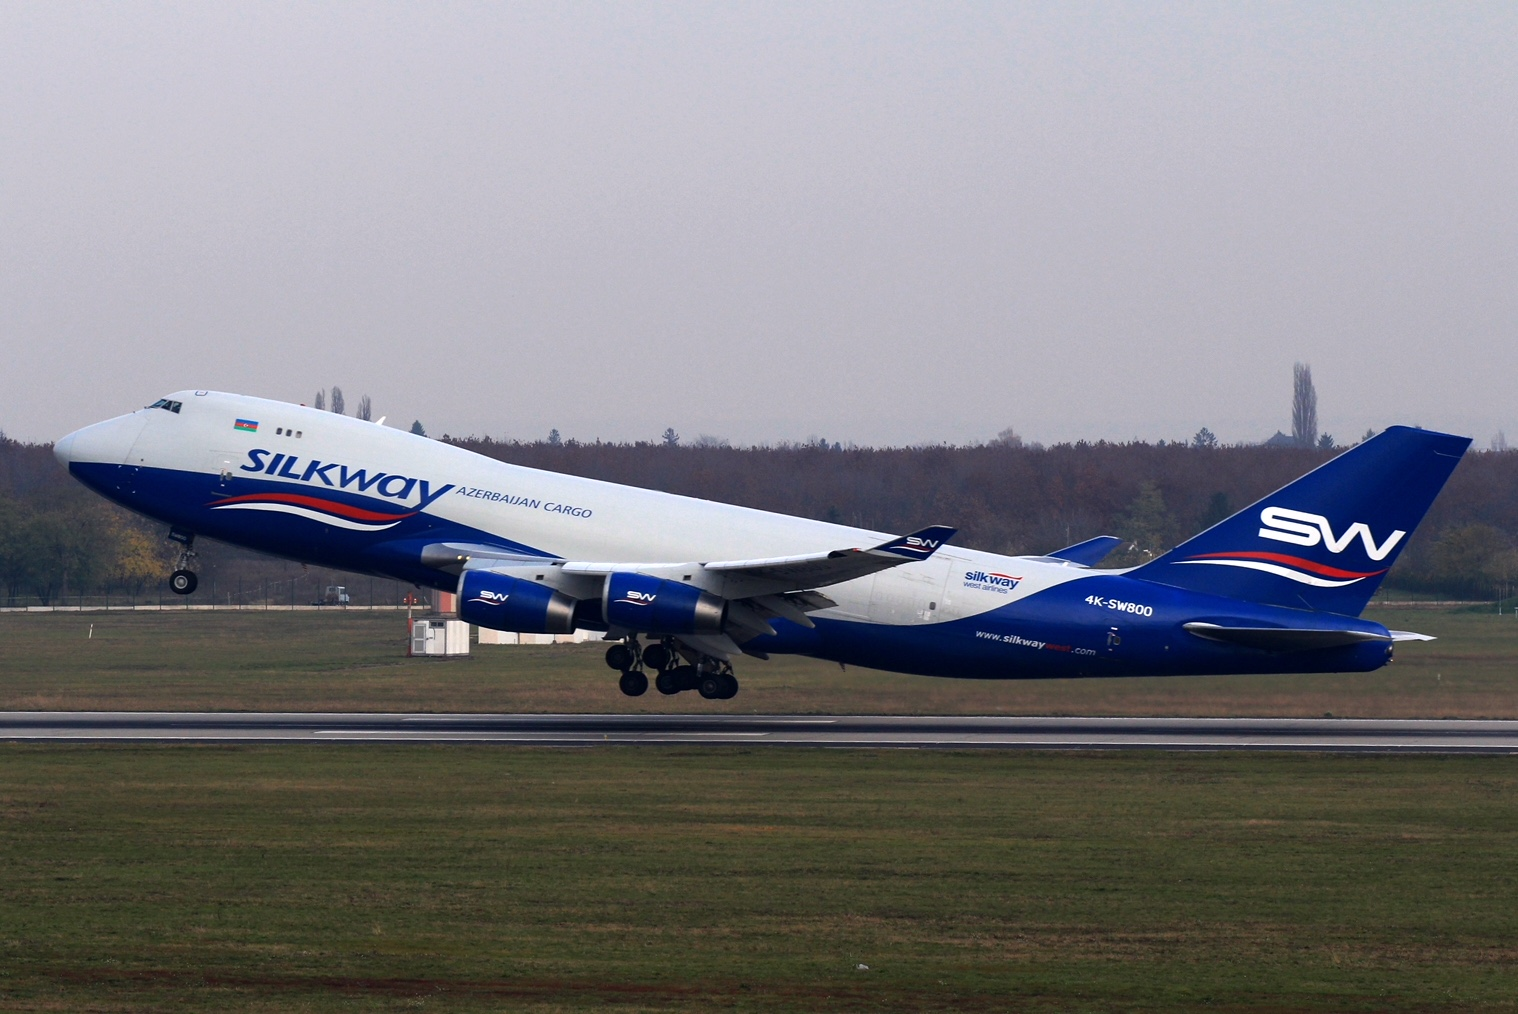 Silk Way West Airlines further expands and adds aircrafts